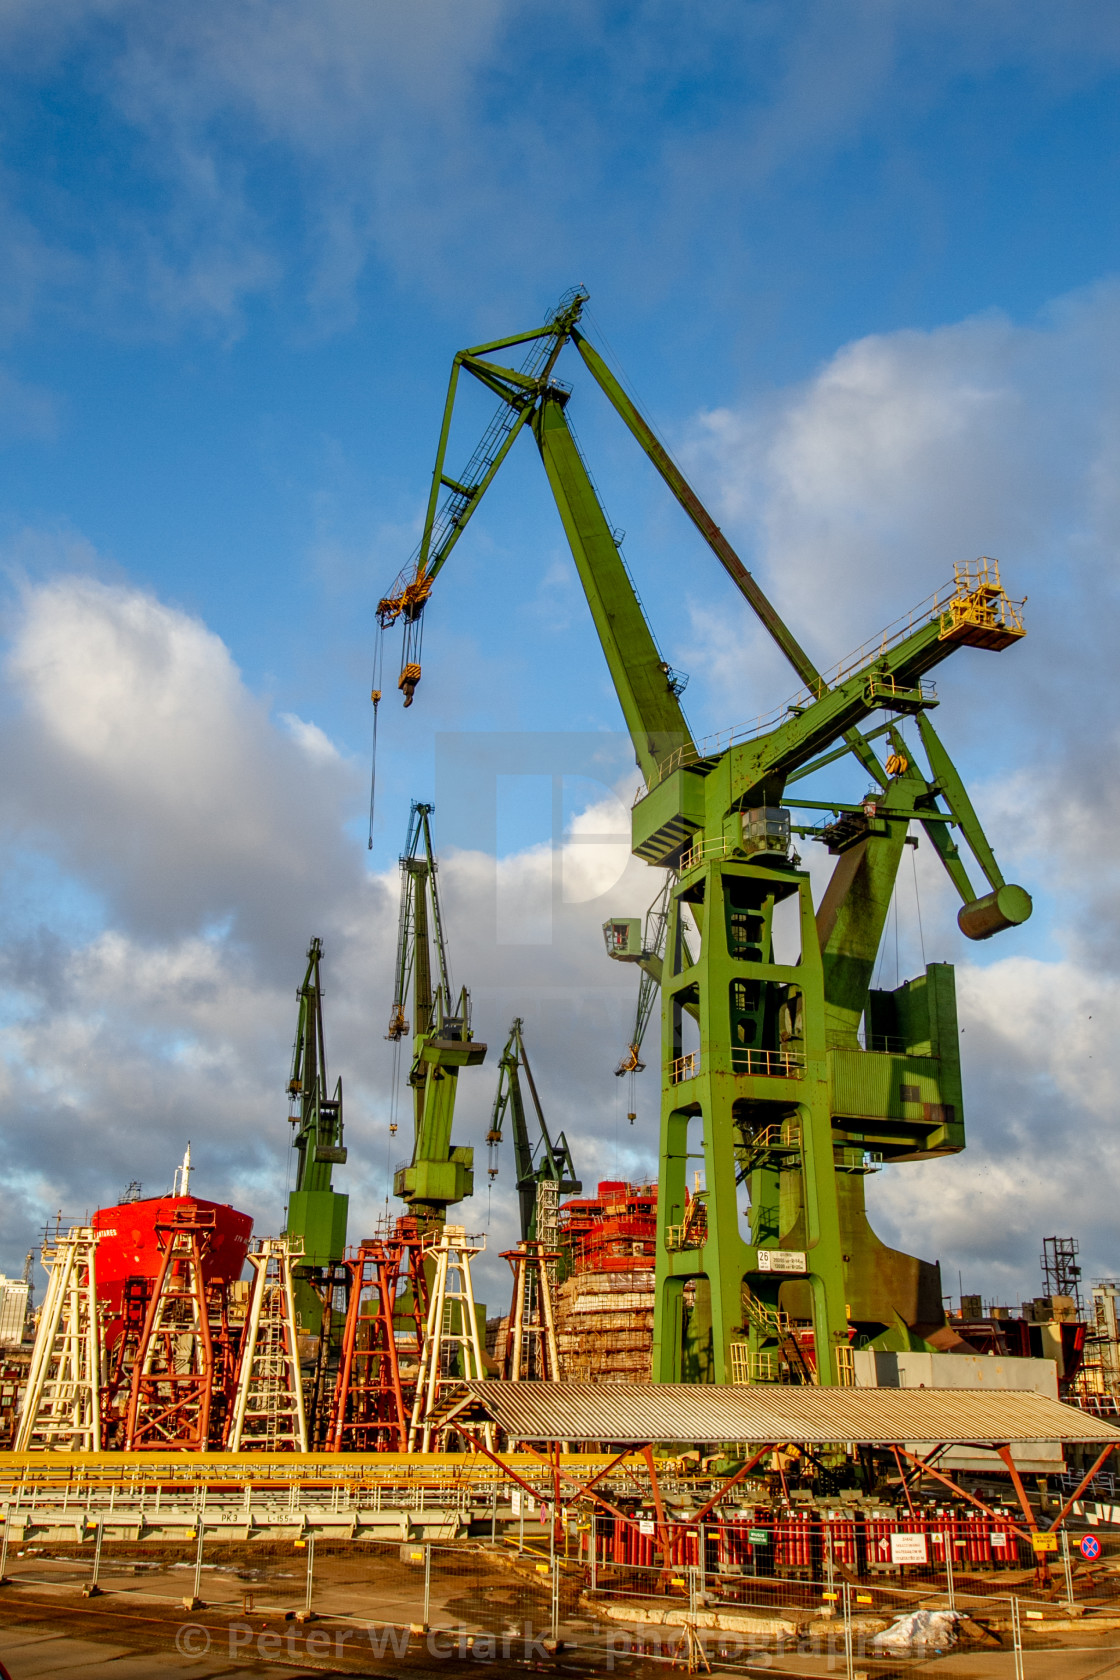 """Gdansk, Poland, Shipyard Cranes, Partially built ship in background."" stock image"